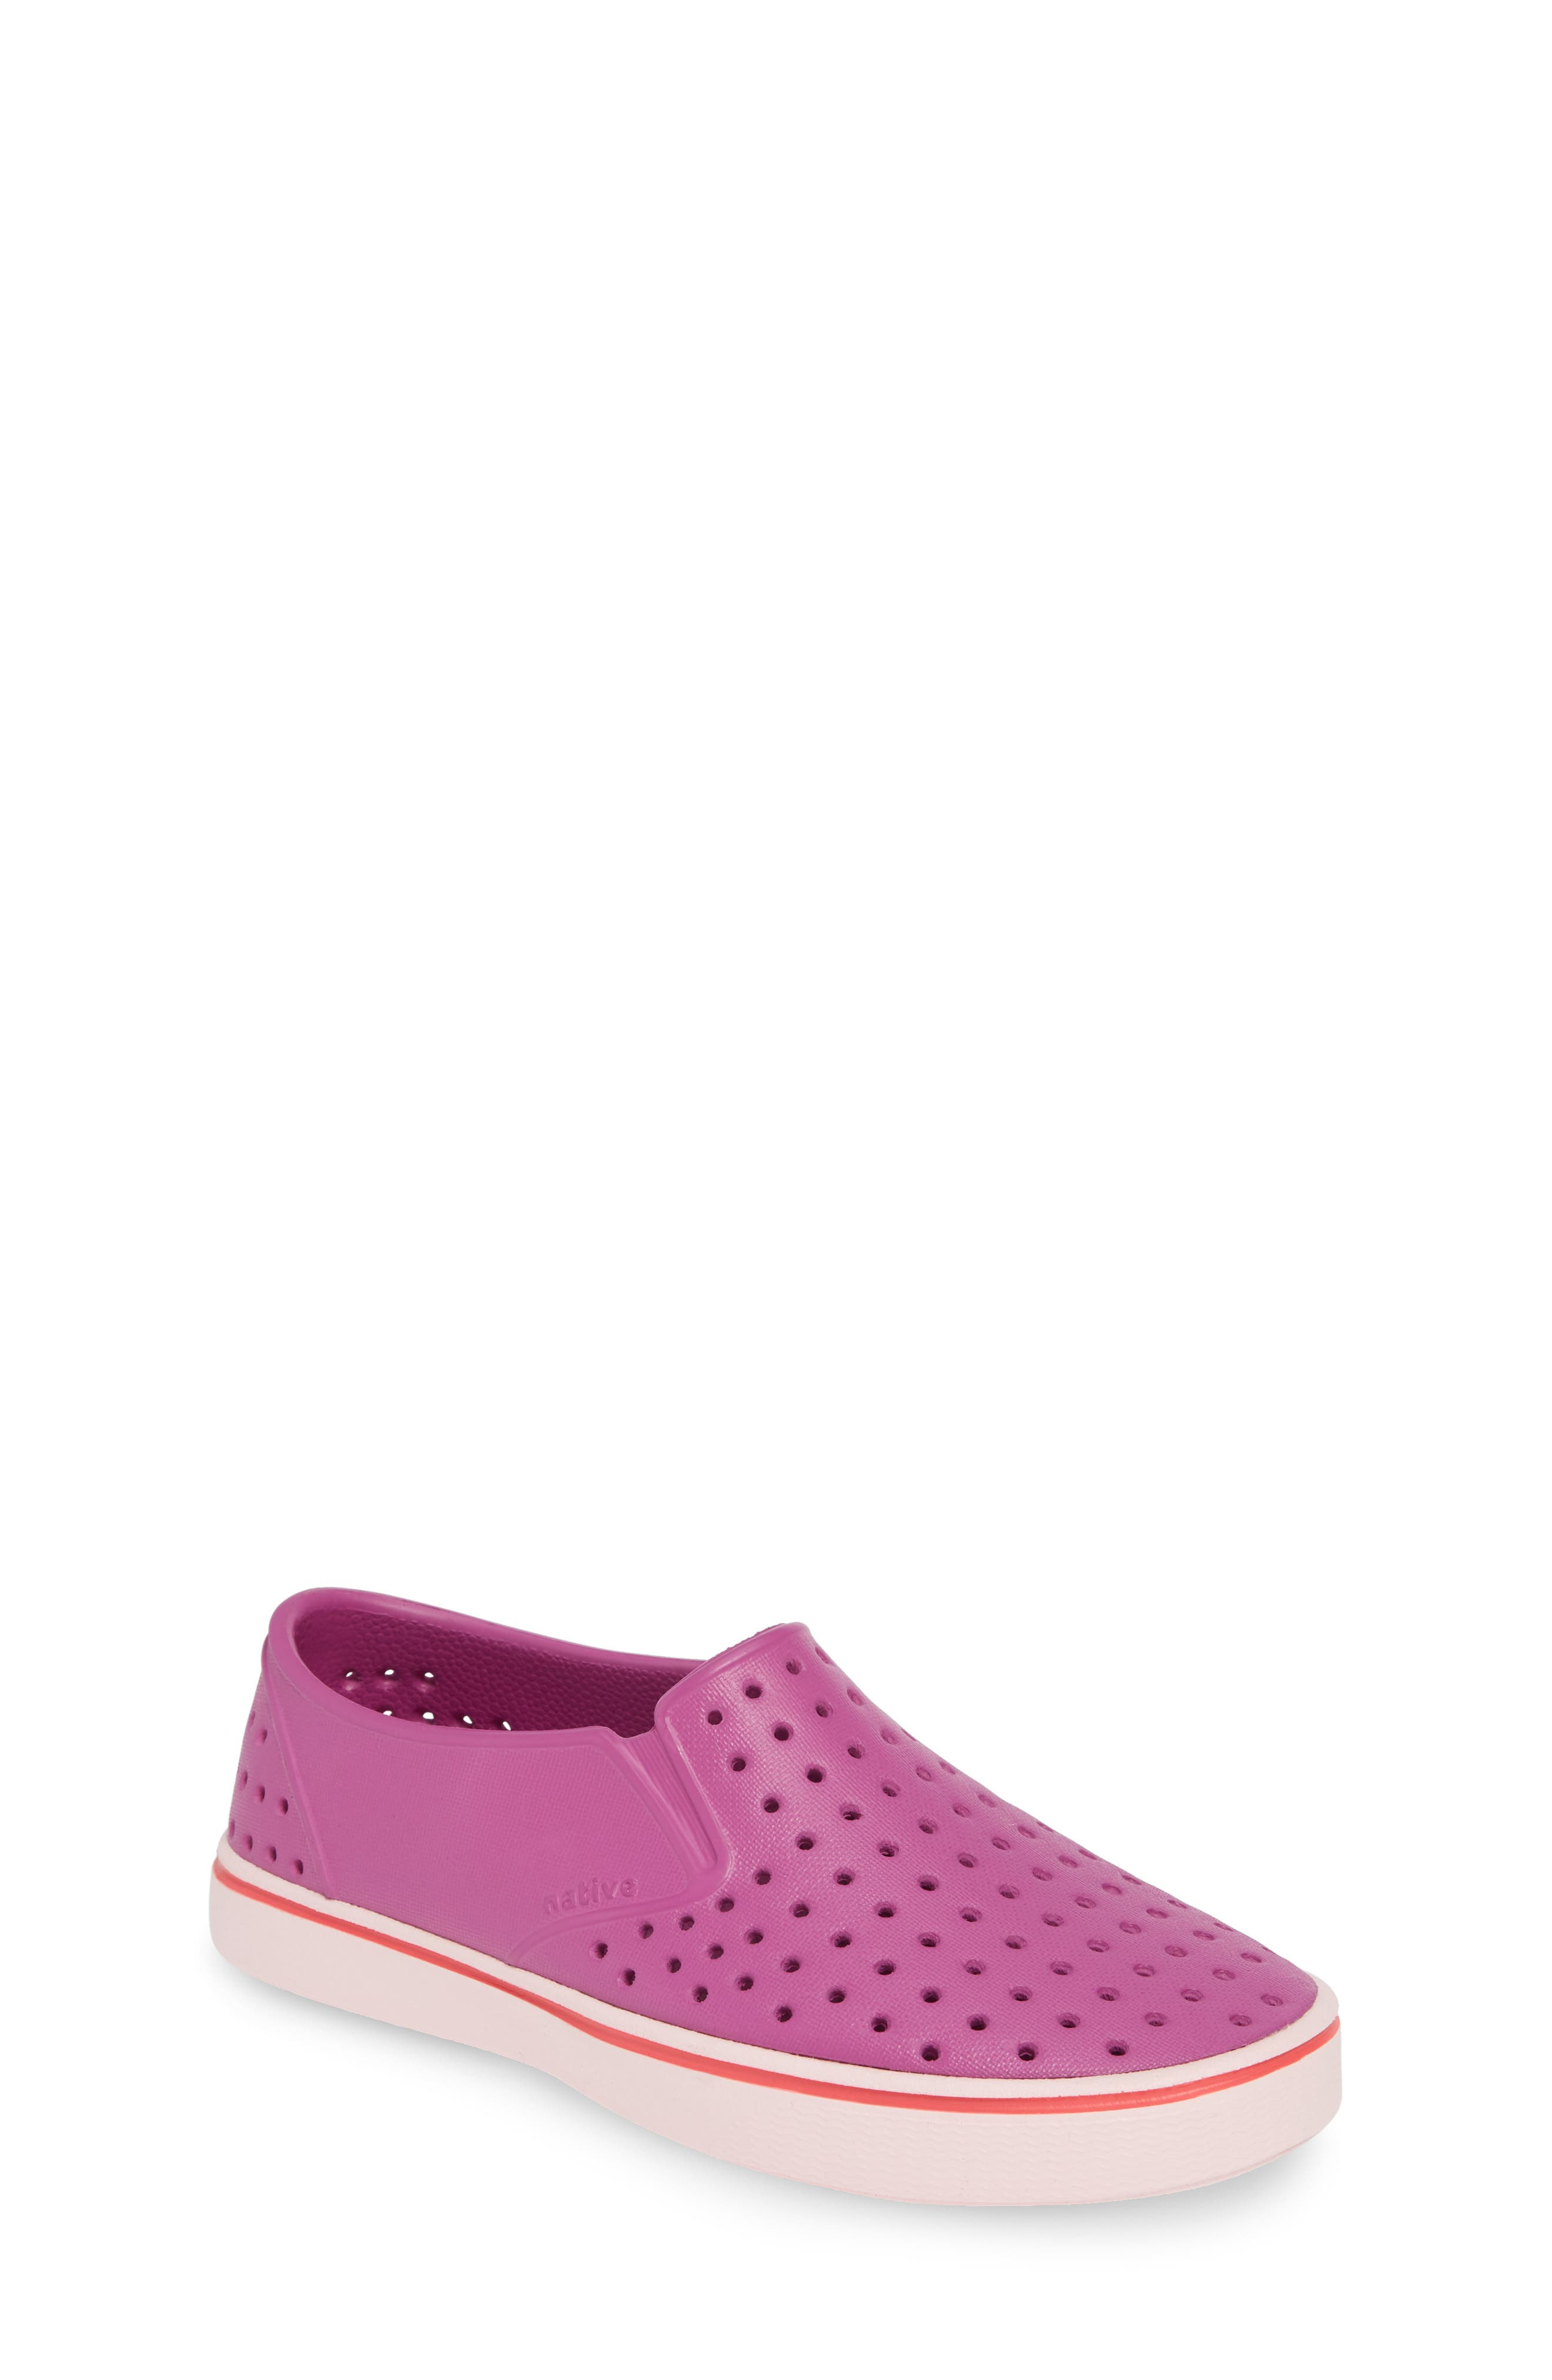 All Girls' Water Shoes Baby & Walker Shoes | Nordstrom